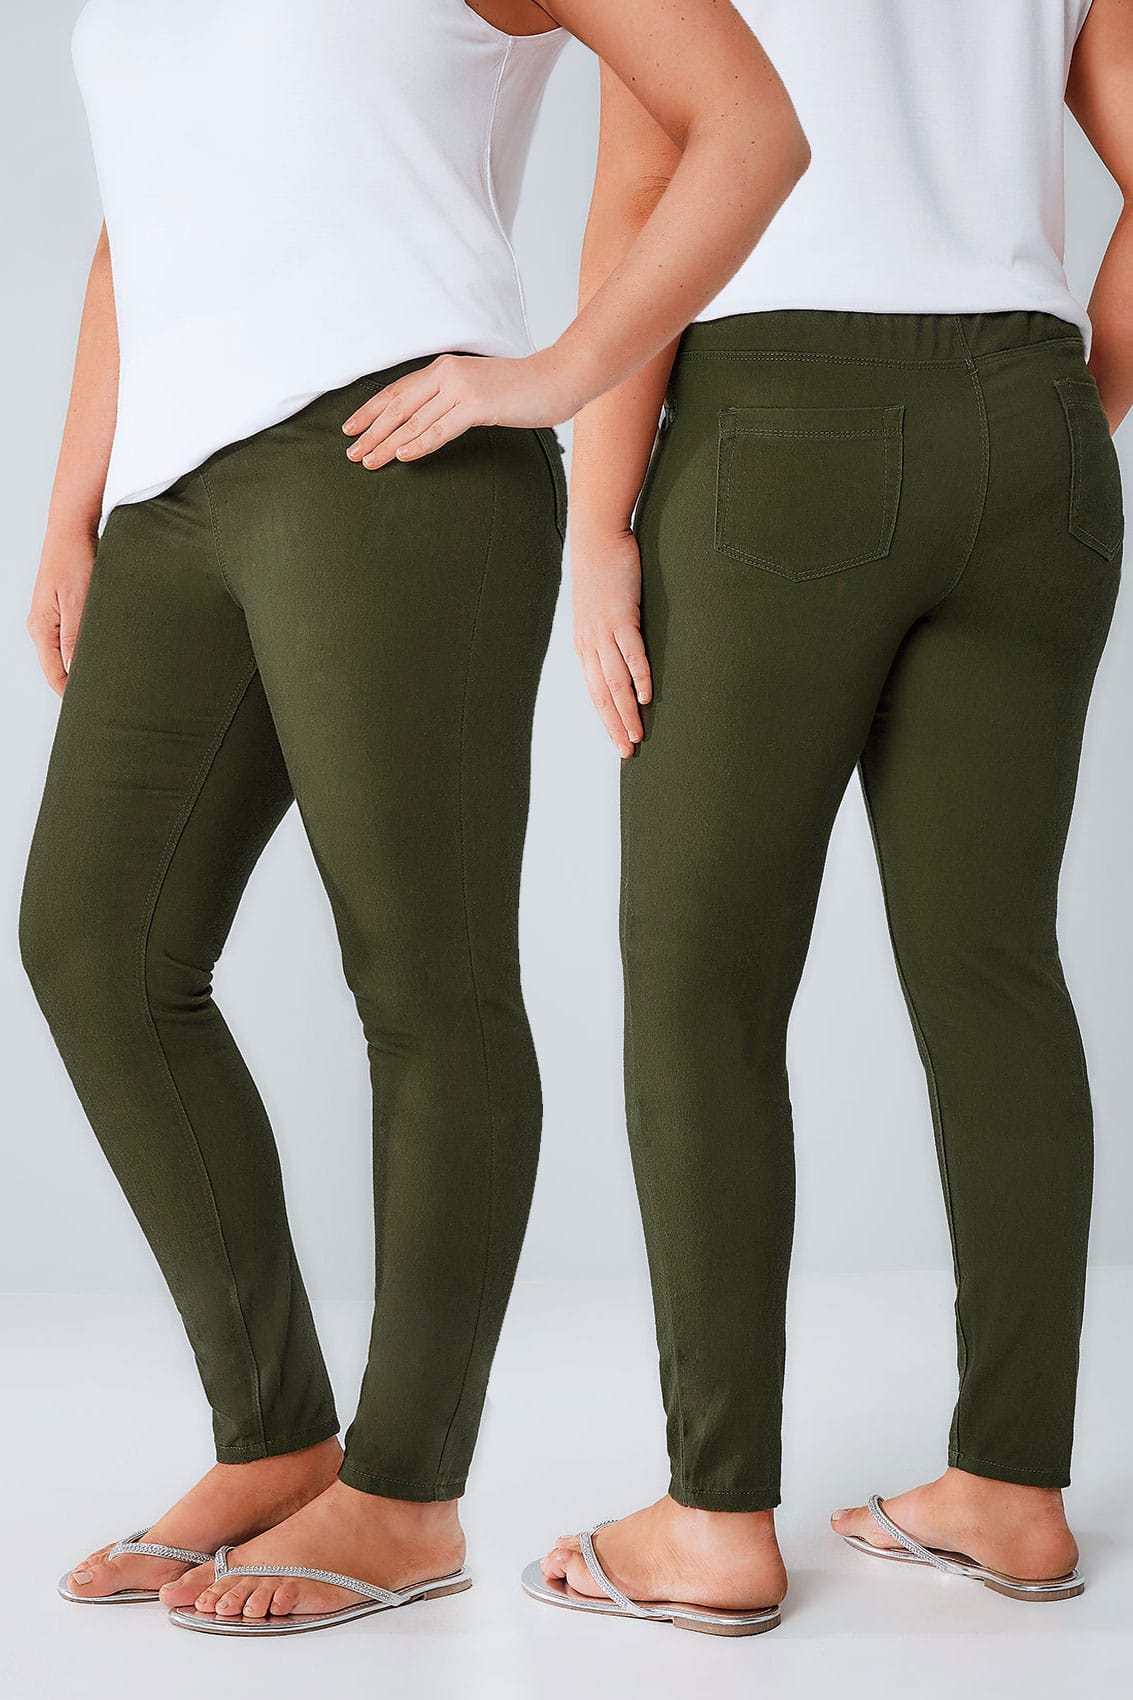 Plus size jeans are available in different washes and fits to flatter your figure. Whether you prefer a light pair of bootcut denim or plus size stretch jeans in a vibrant color, Kmart has a .